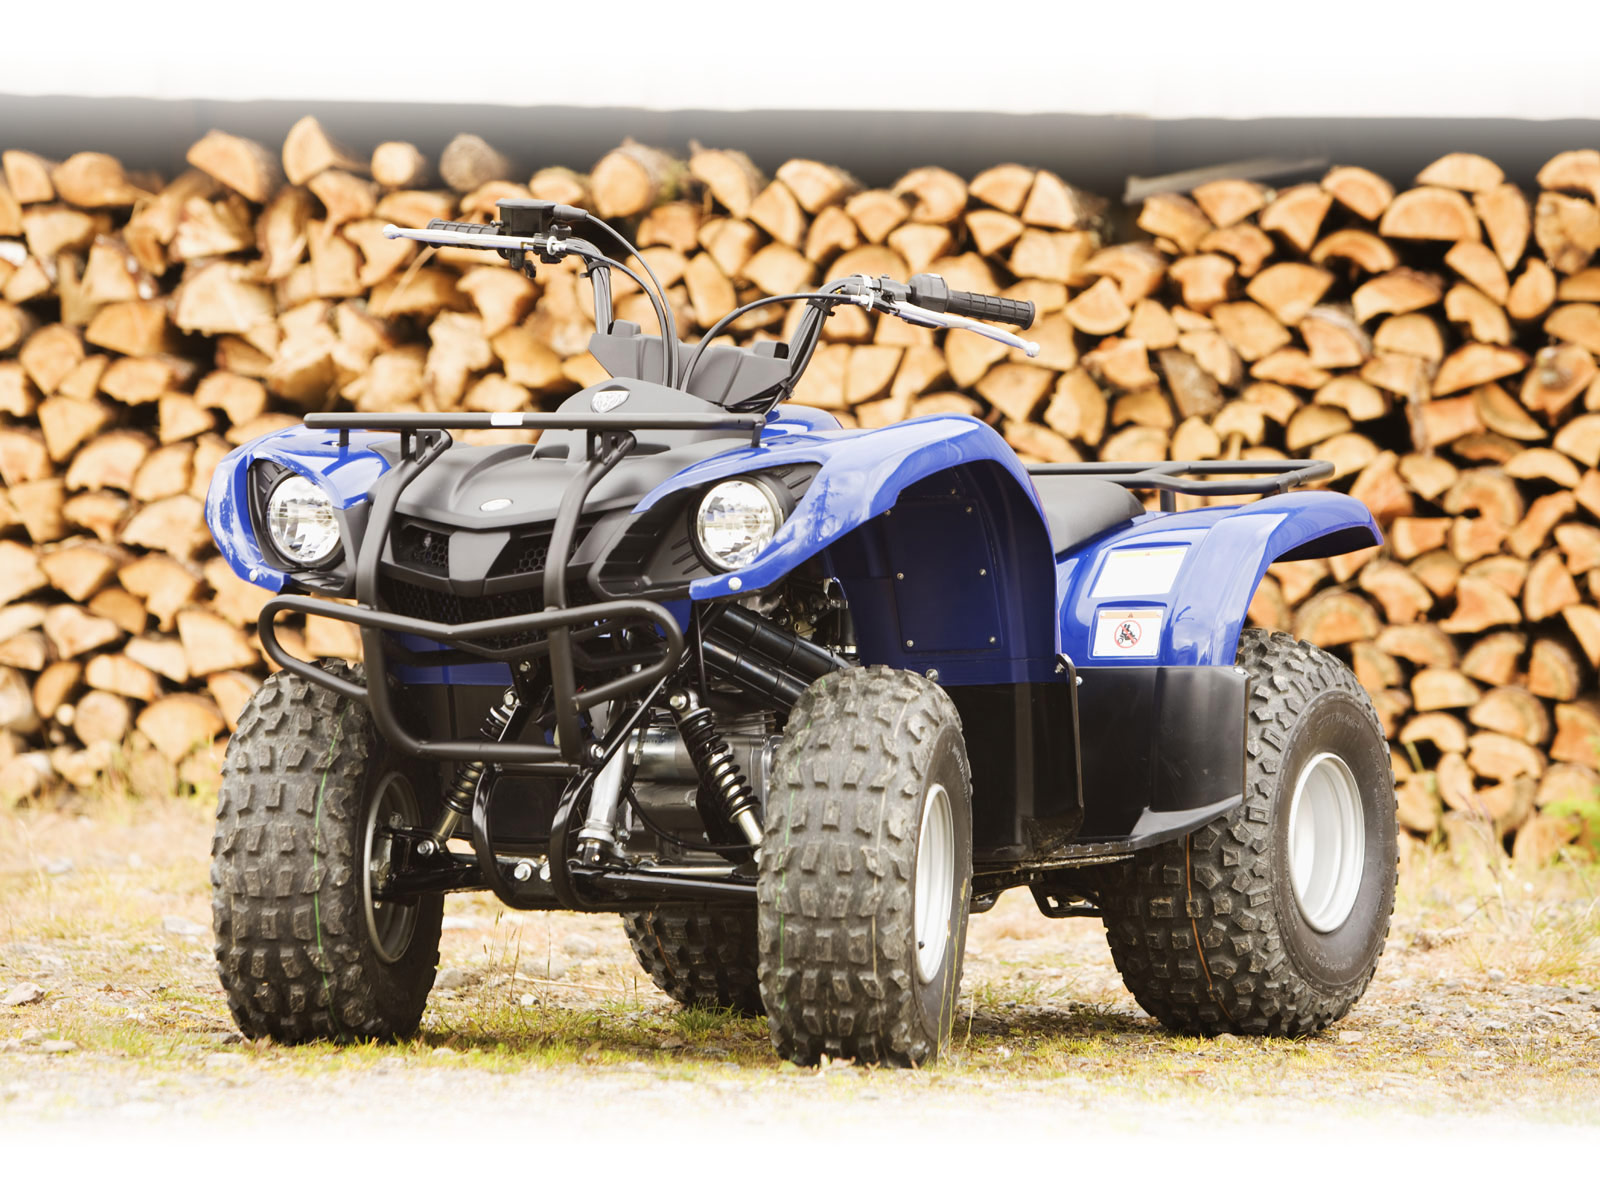 Yamaha Grizzly 125 Wiring Diagram | Online Wiring Diagram